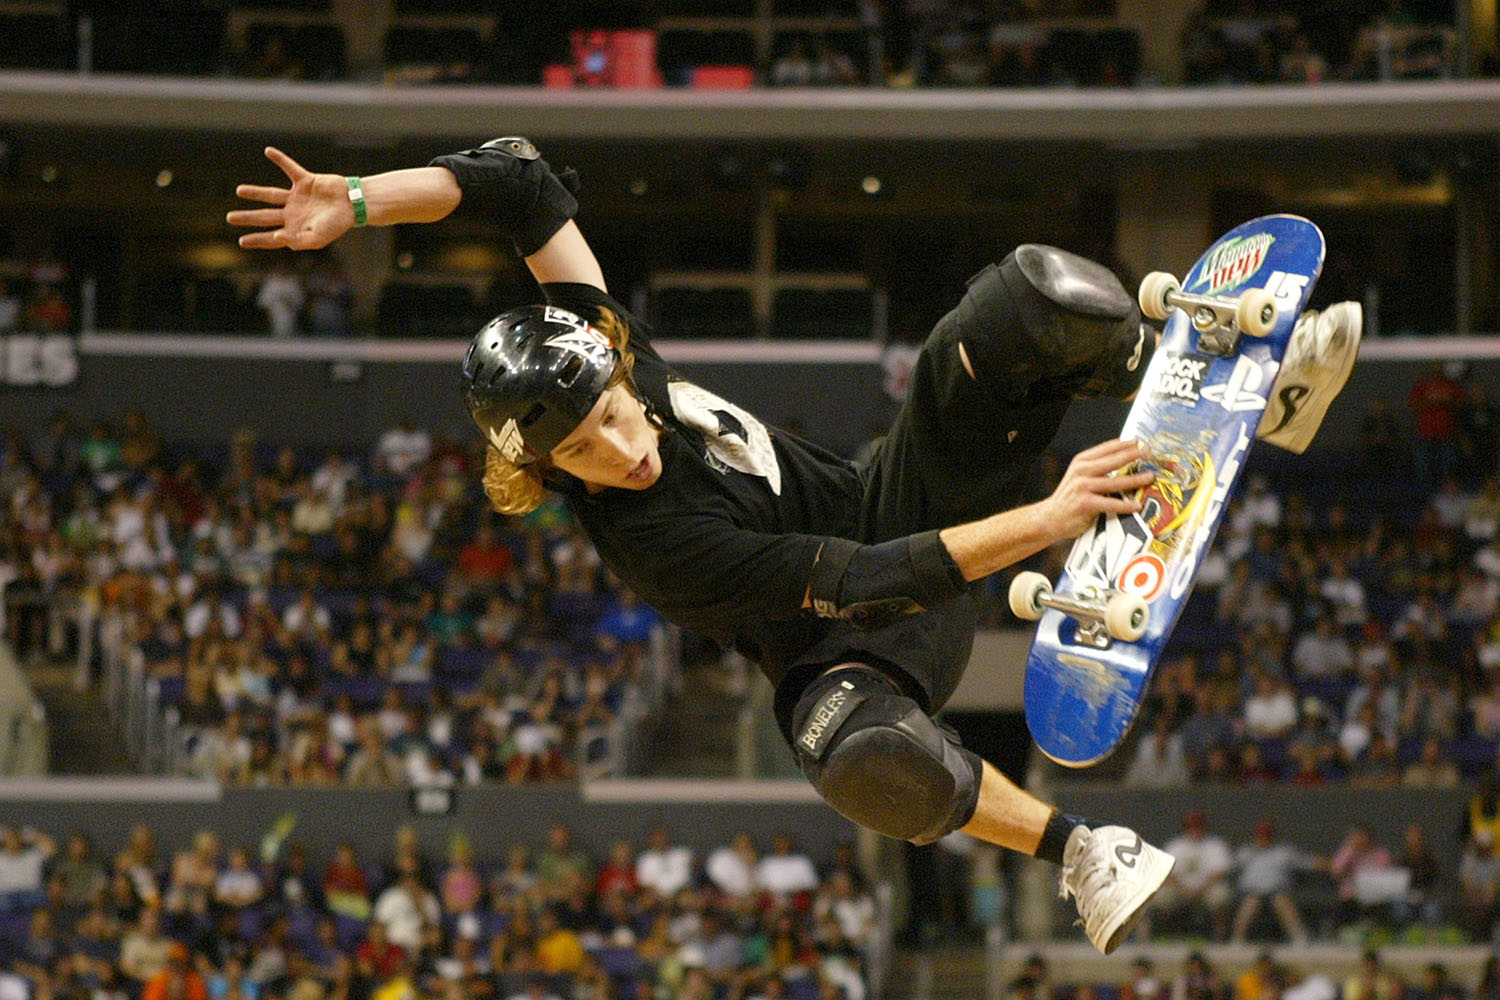 Silver Medalist Shaun White at the ESPN X Games 11 during the Men's Skateboard Vert Finals on Friday, August 5, 2005.